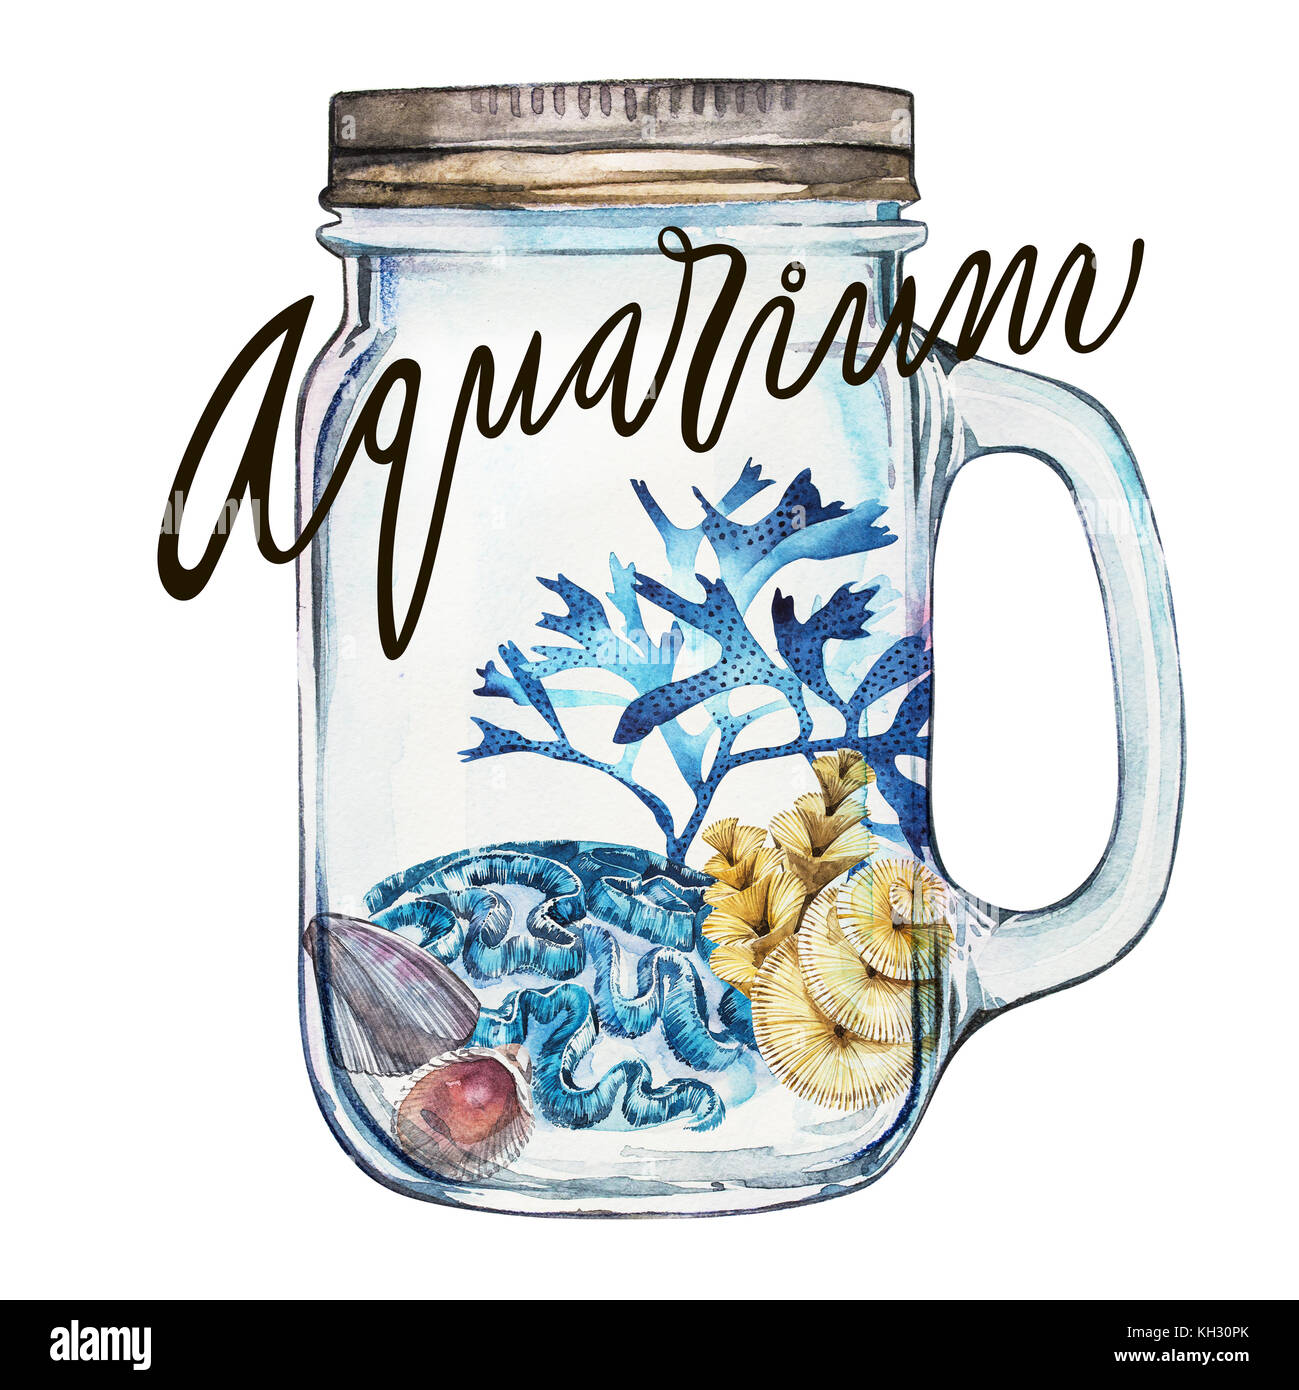 Word-aquarium. Compositions Seaweed sea life and corals object isolated on white background. Watercolor hand drawn - Stock Image